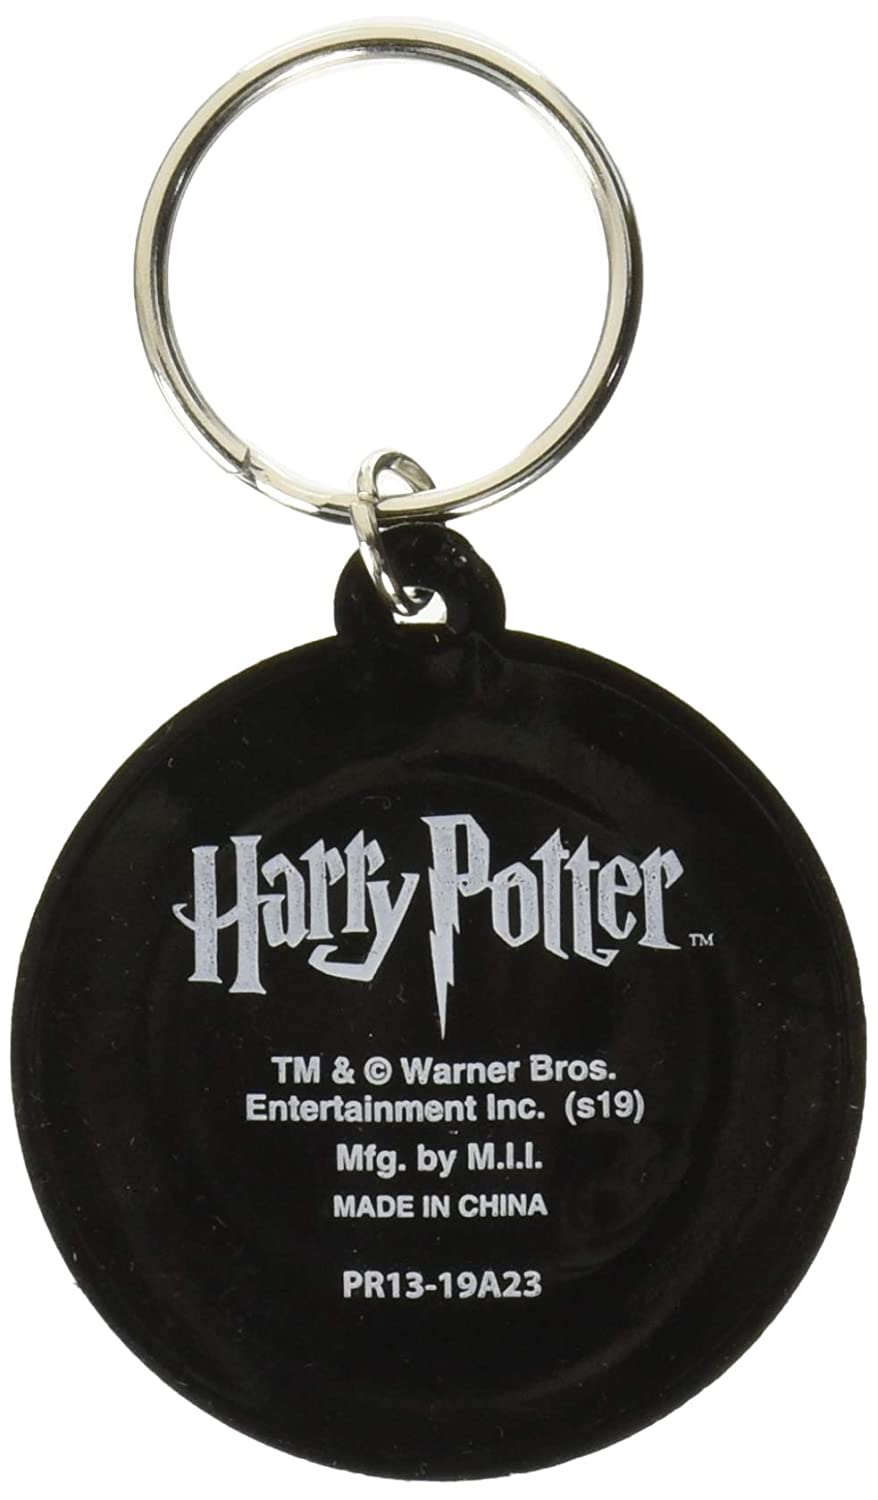 Amazon.com: Harry Potter – Platform 9 3/4 – Llavero de goma ...